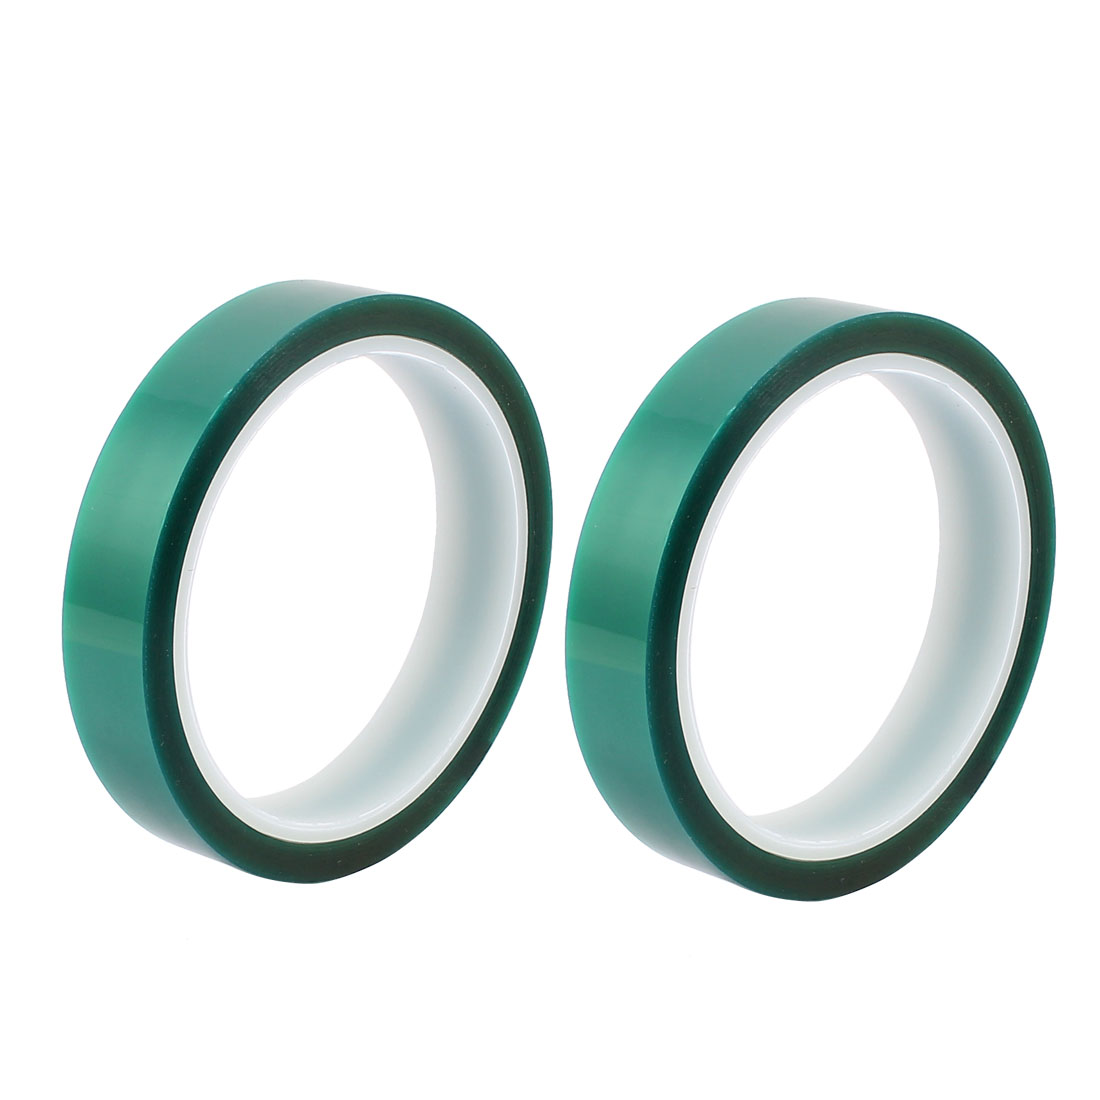 2pcs 20mm Width 33M Long Green PET High Temperature Heat Resistant PCB Solder Tape